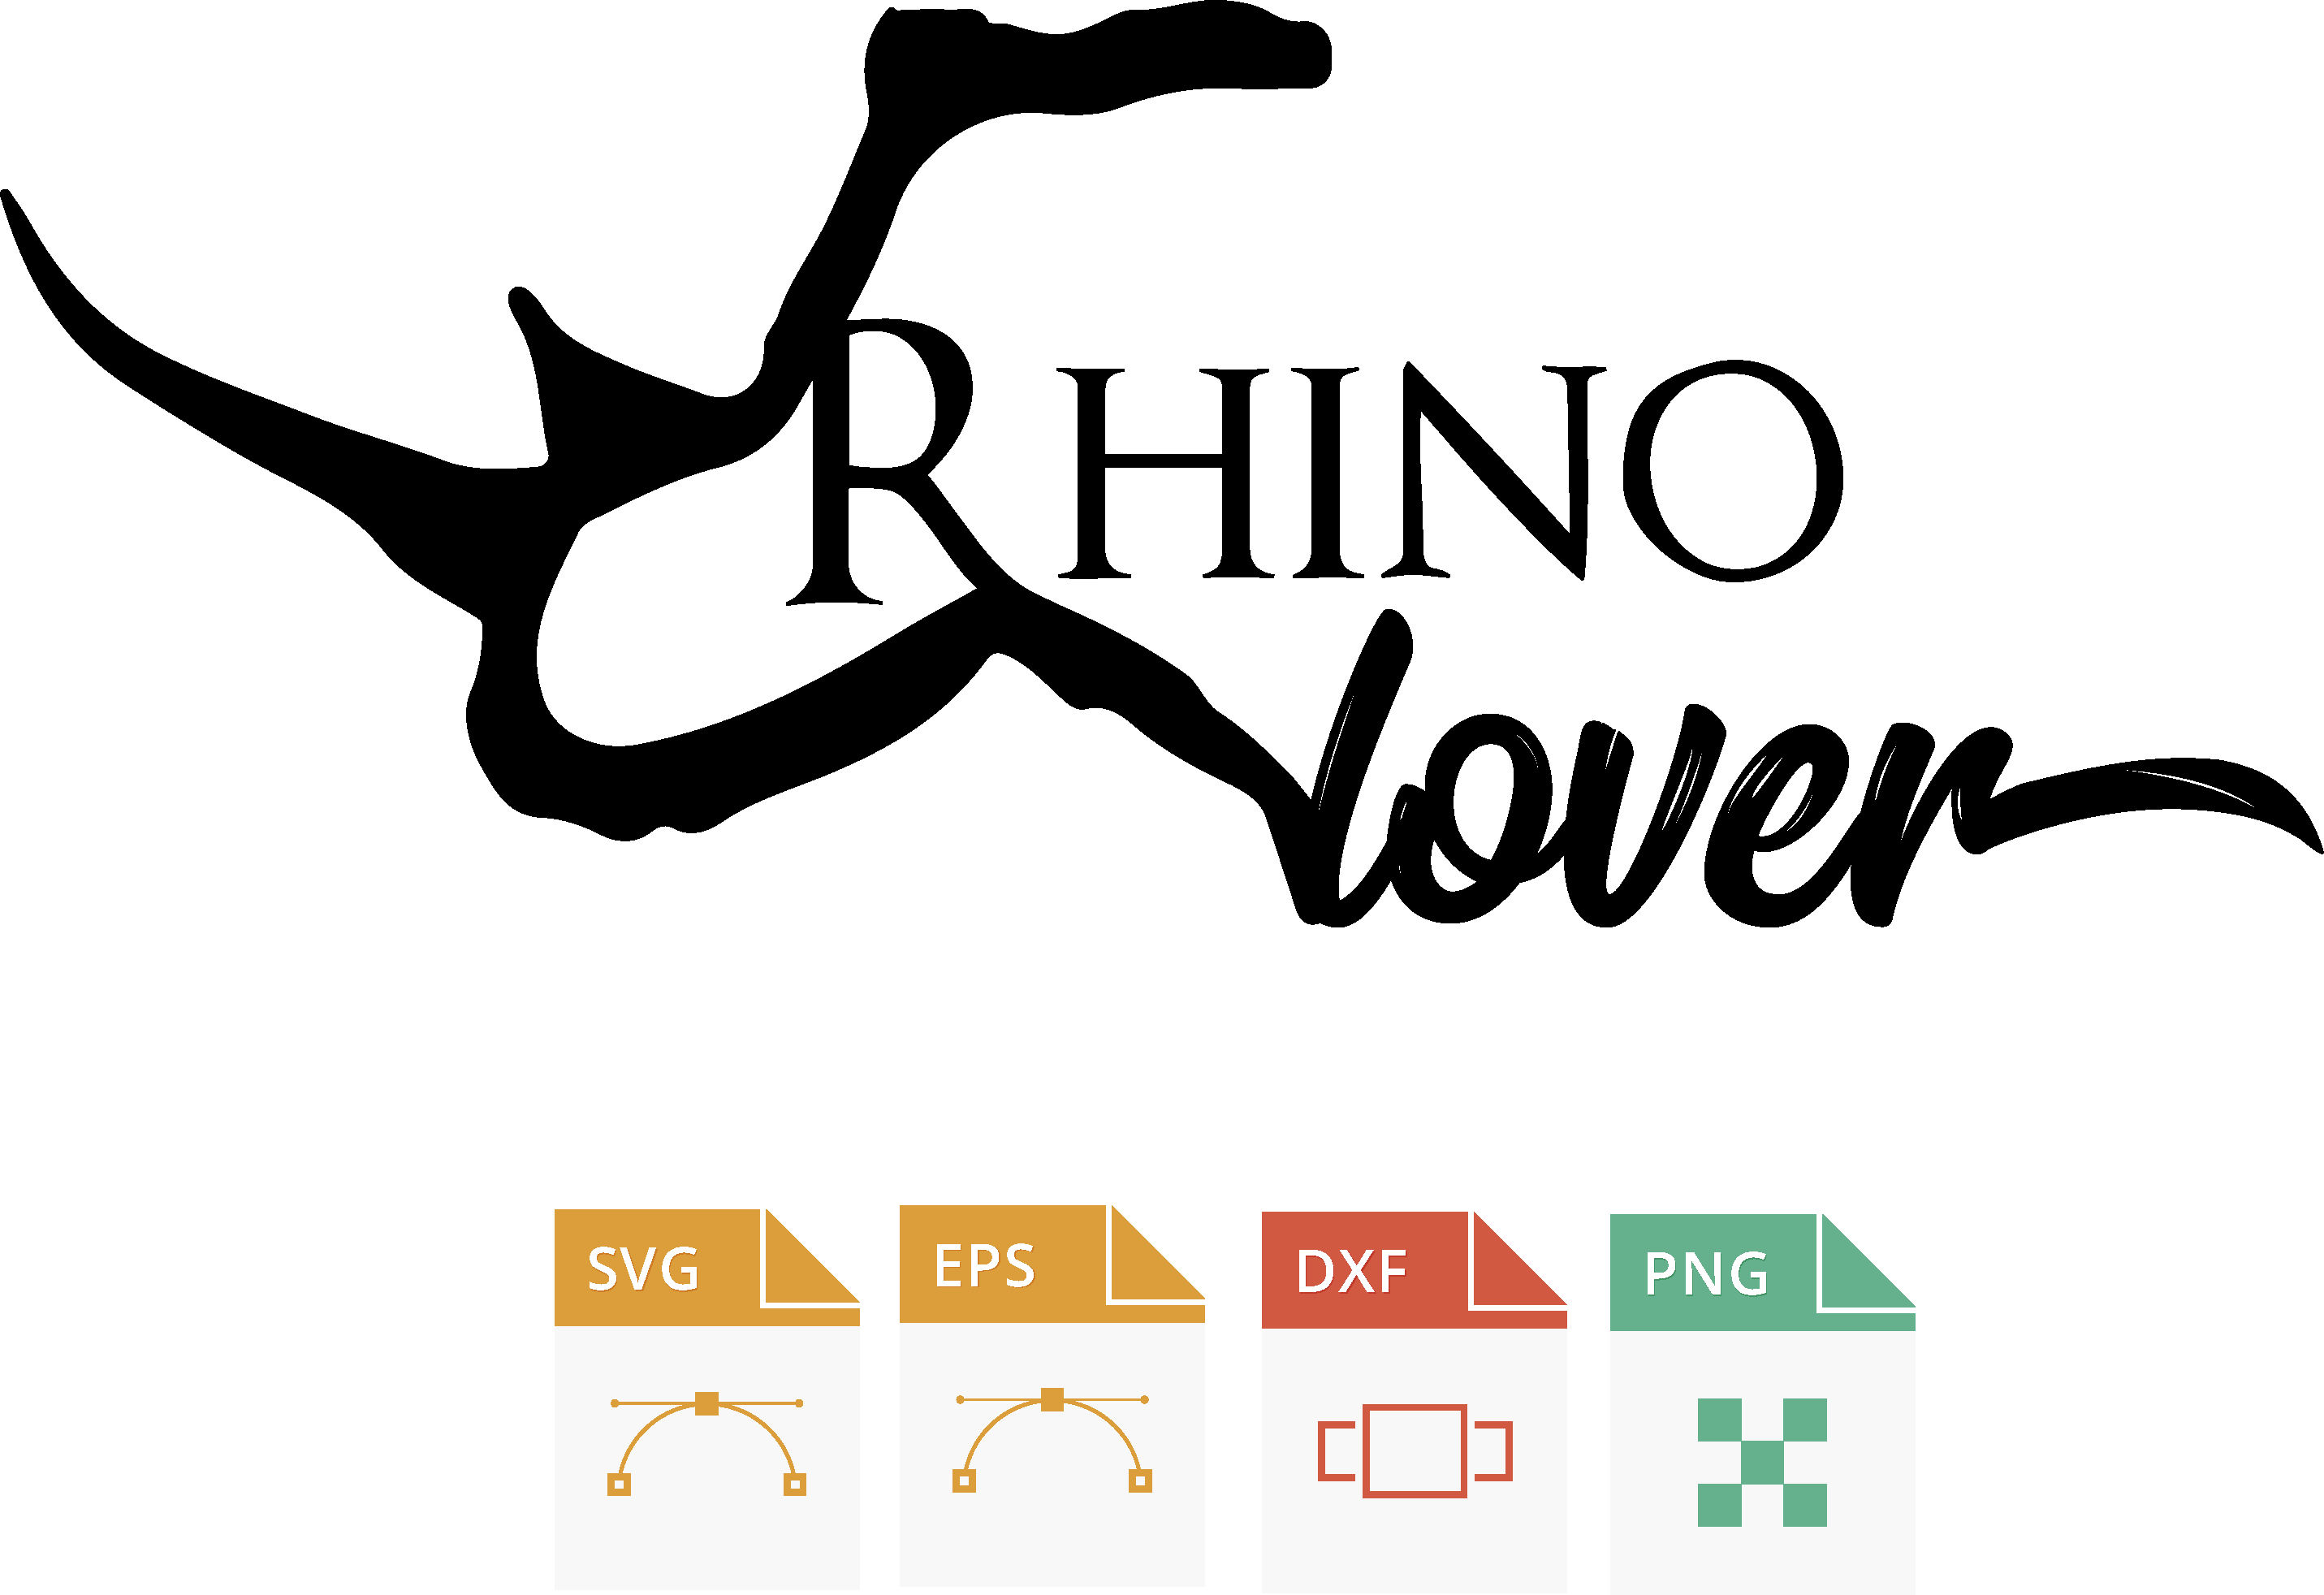 Rhinoceros, Rhino lover svg, Rhinoceros, rinoceronte, amante a los rinocerontes eps, cutting machine example image 2